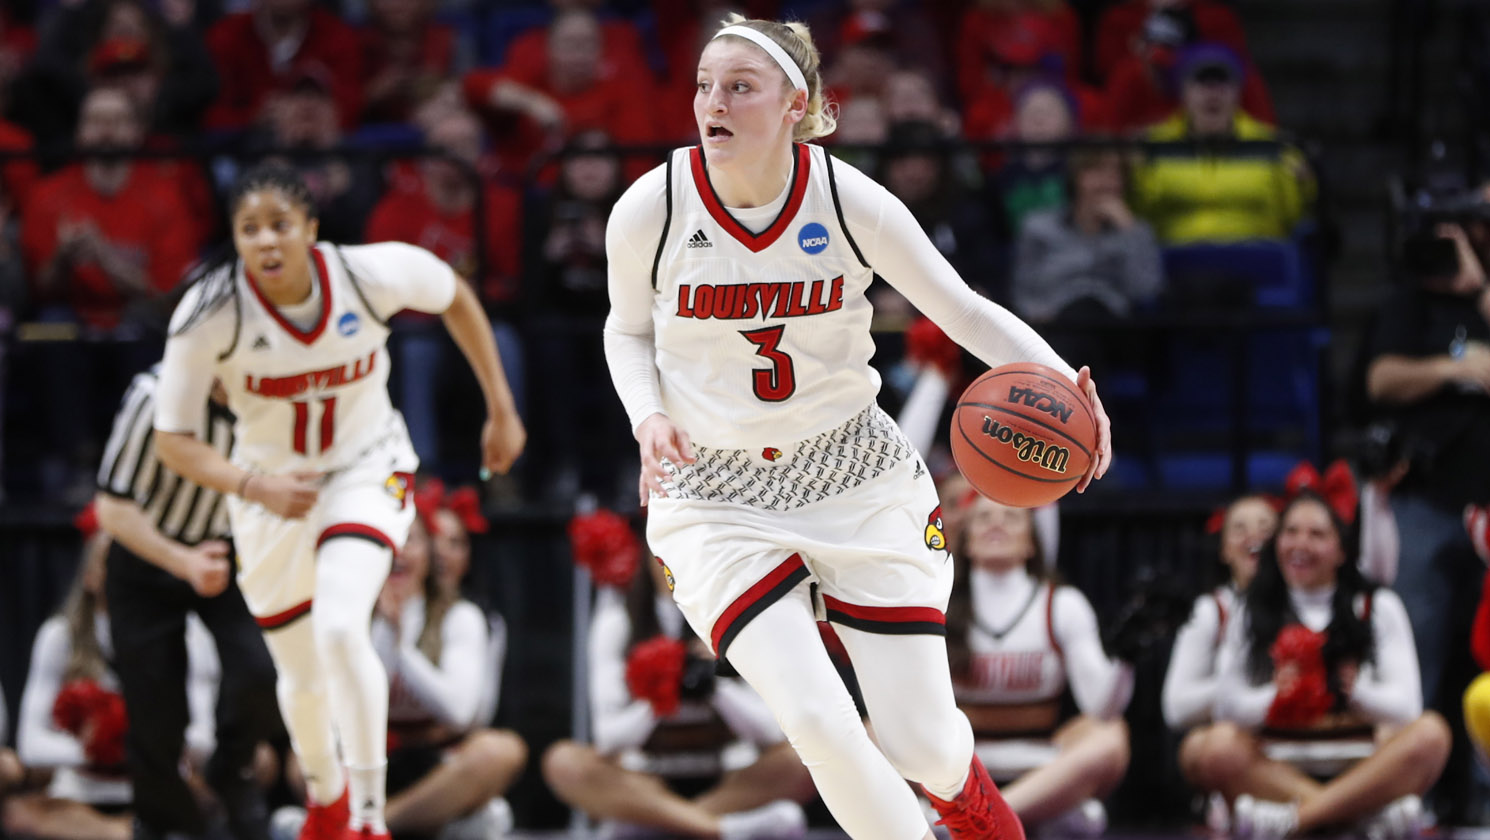 ESPN to Televise UofL s Home Contest Versus UConn - University of ... fc6f56c003